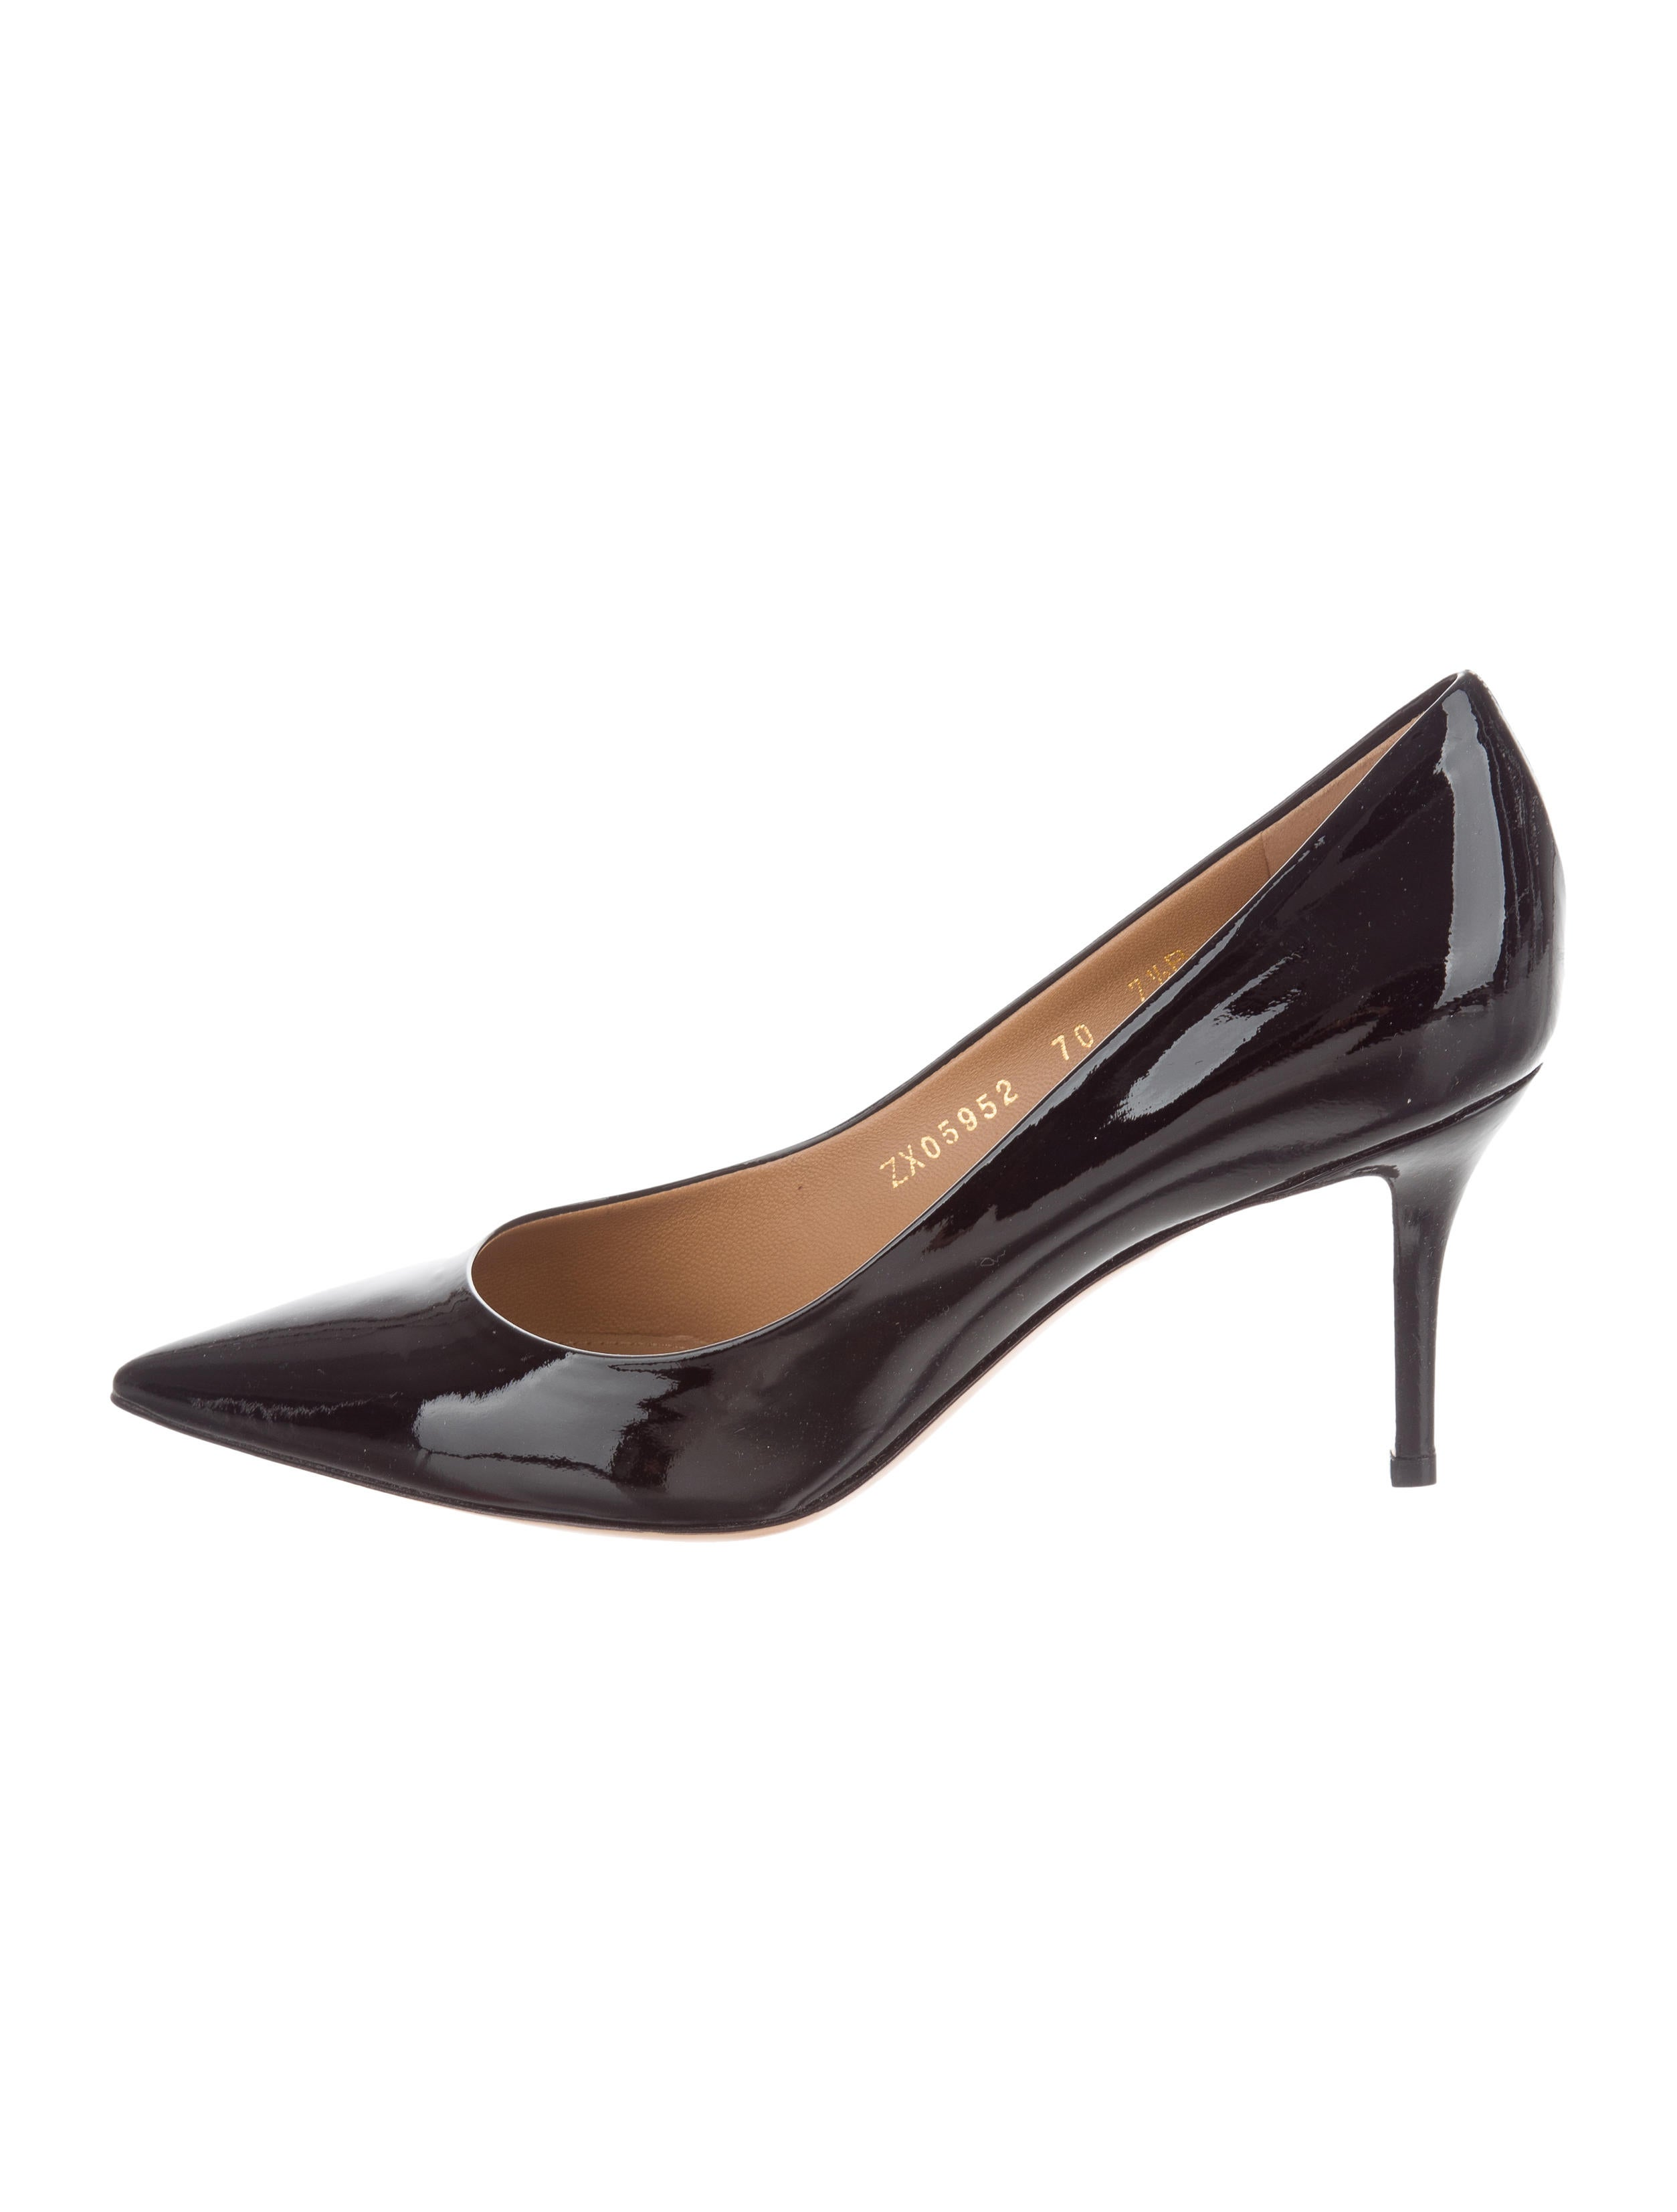 Salvatore Ferragamo Patent Leather Pointed-Toe Pumps free shipping outlet clearance affordable pick a best nwTuIj